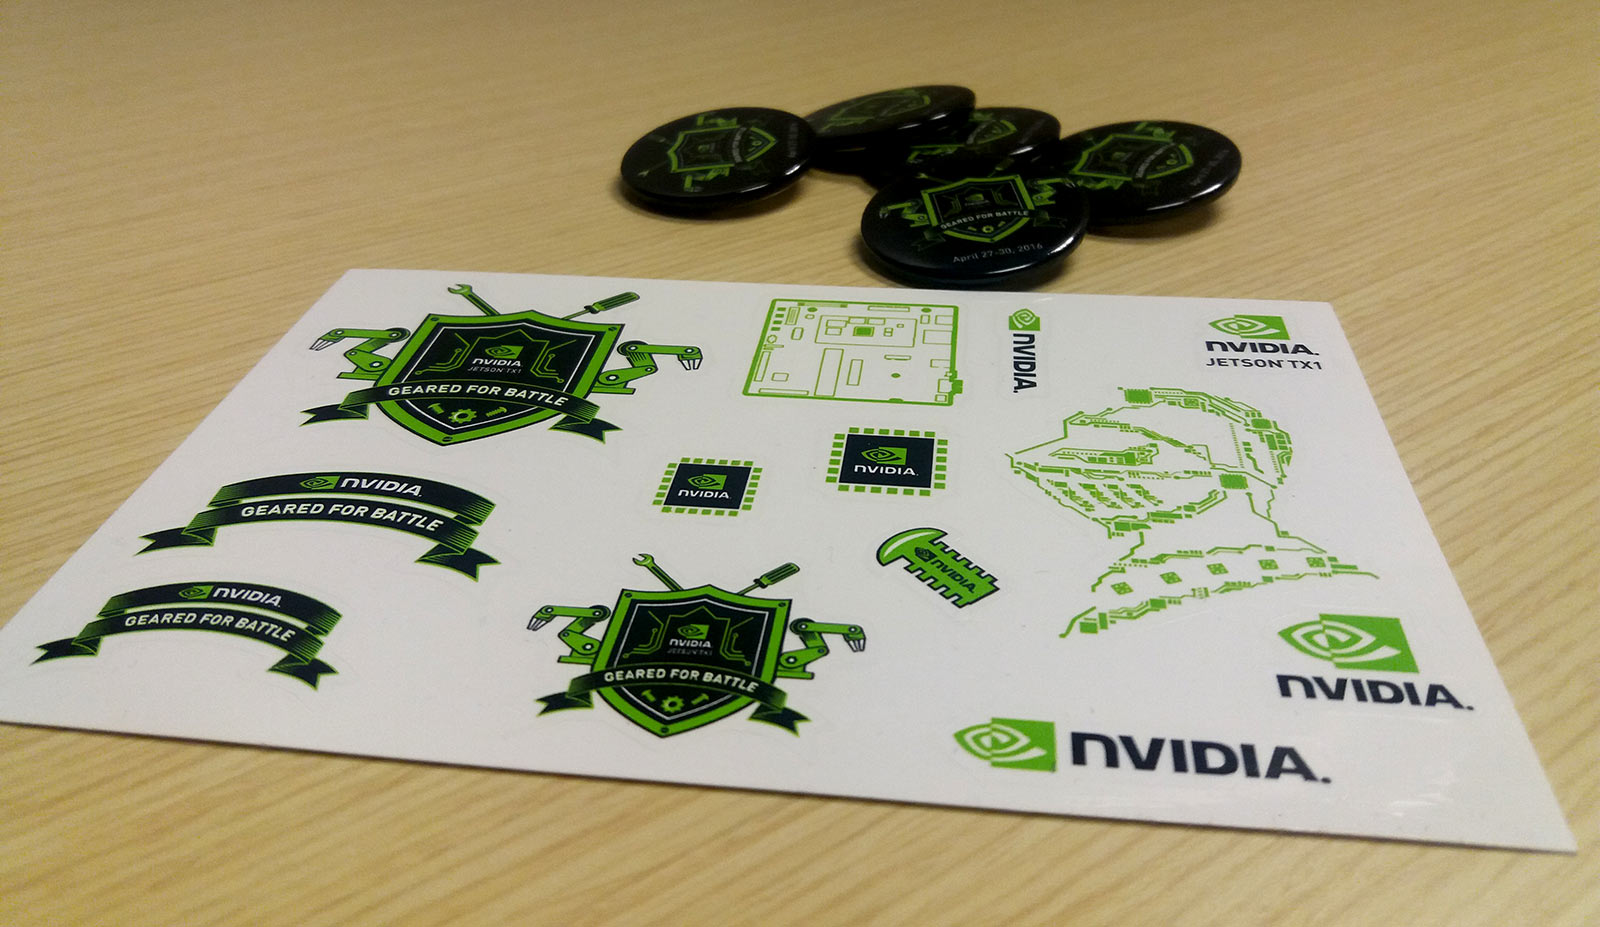 Printed sticker sheets and pins